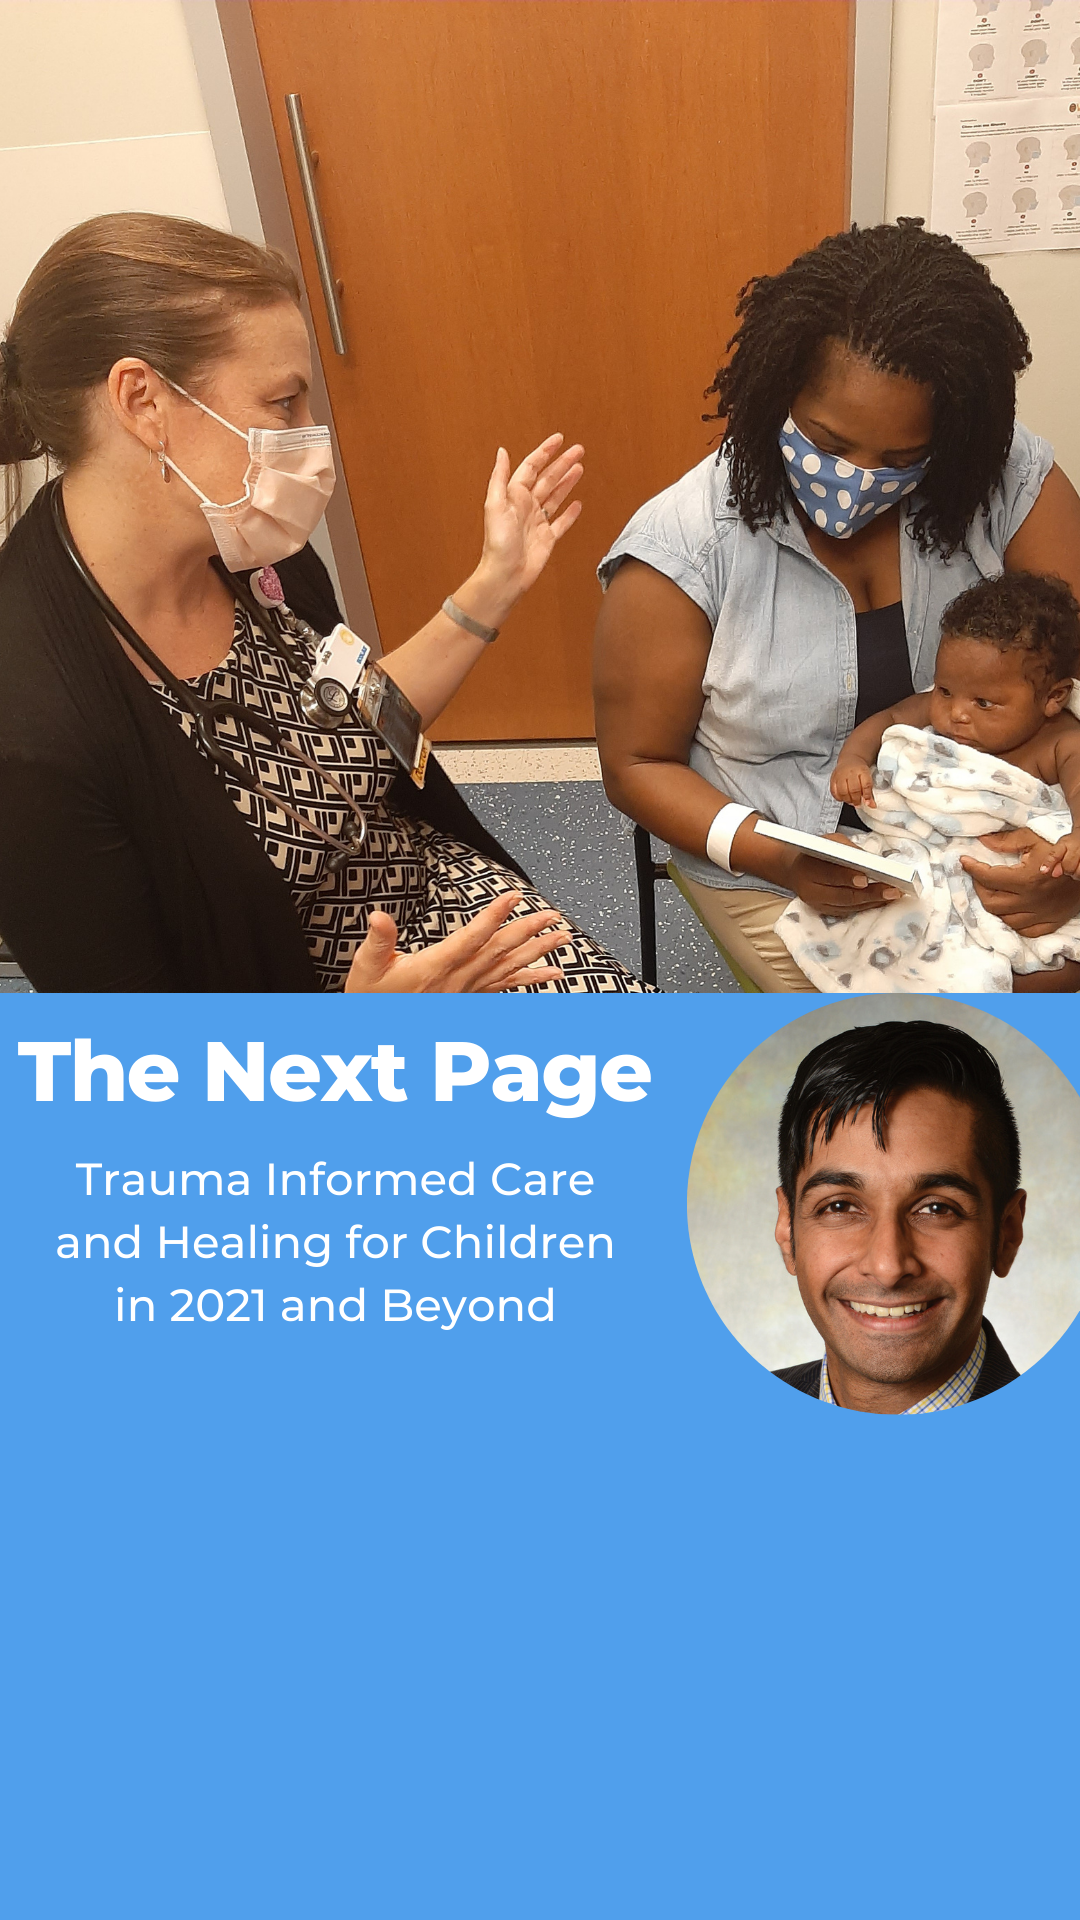 The Next Page: Trauma Informed Care and Healing for Kids in 2021